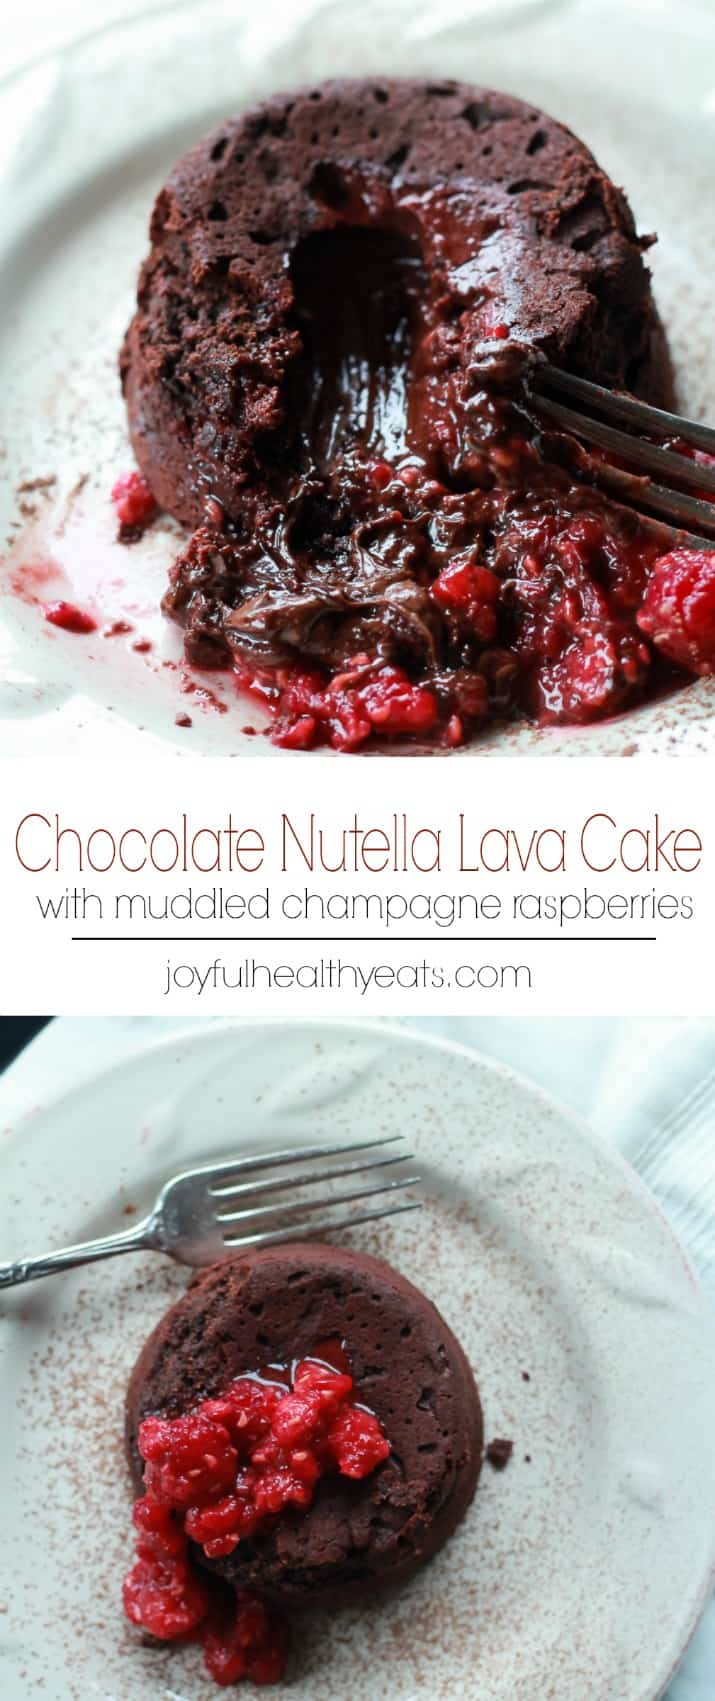 Nutella Chocolate Lava Cake with Muddled Champagne Raspberries